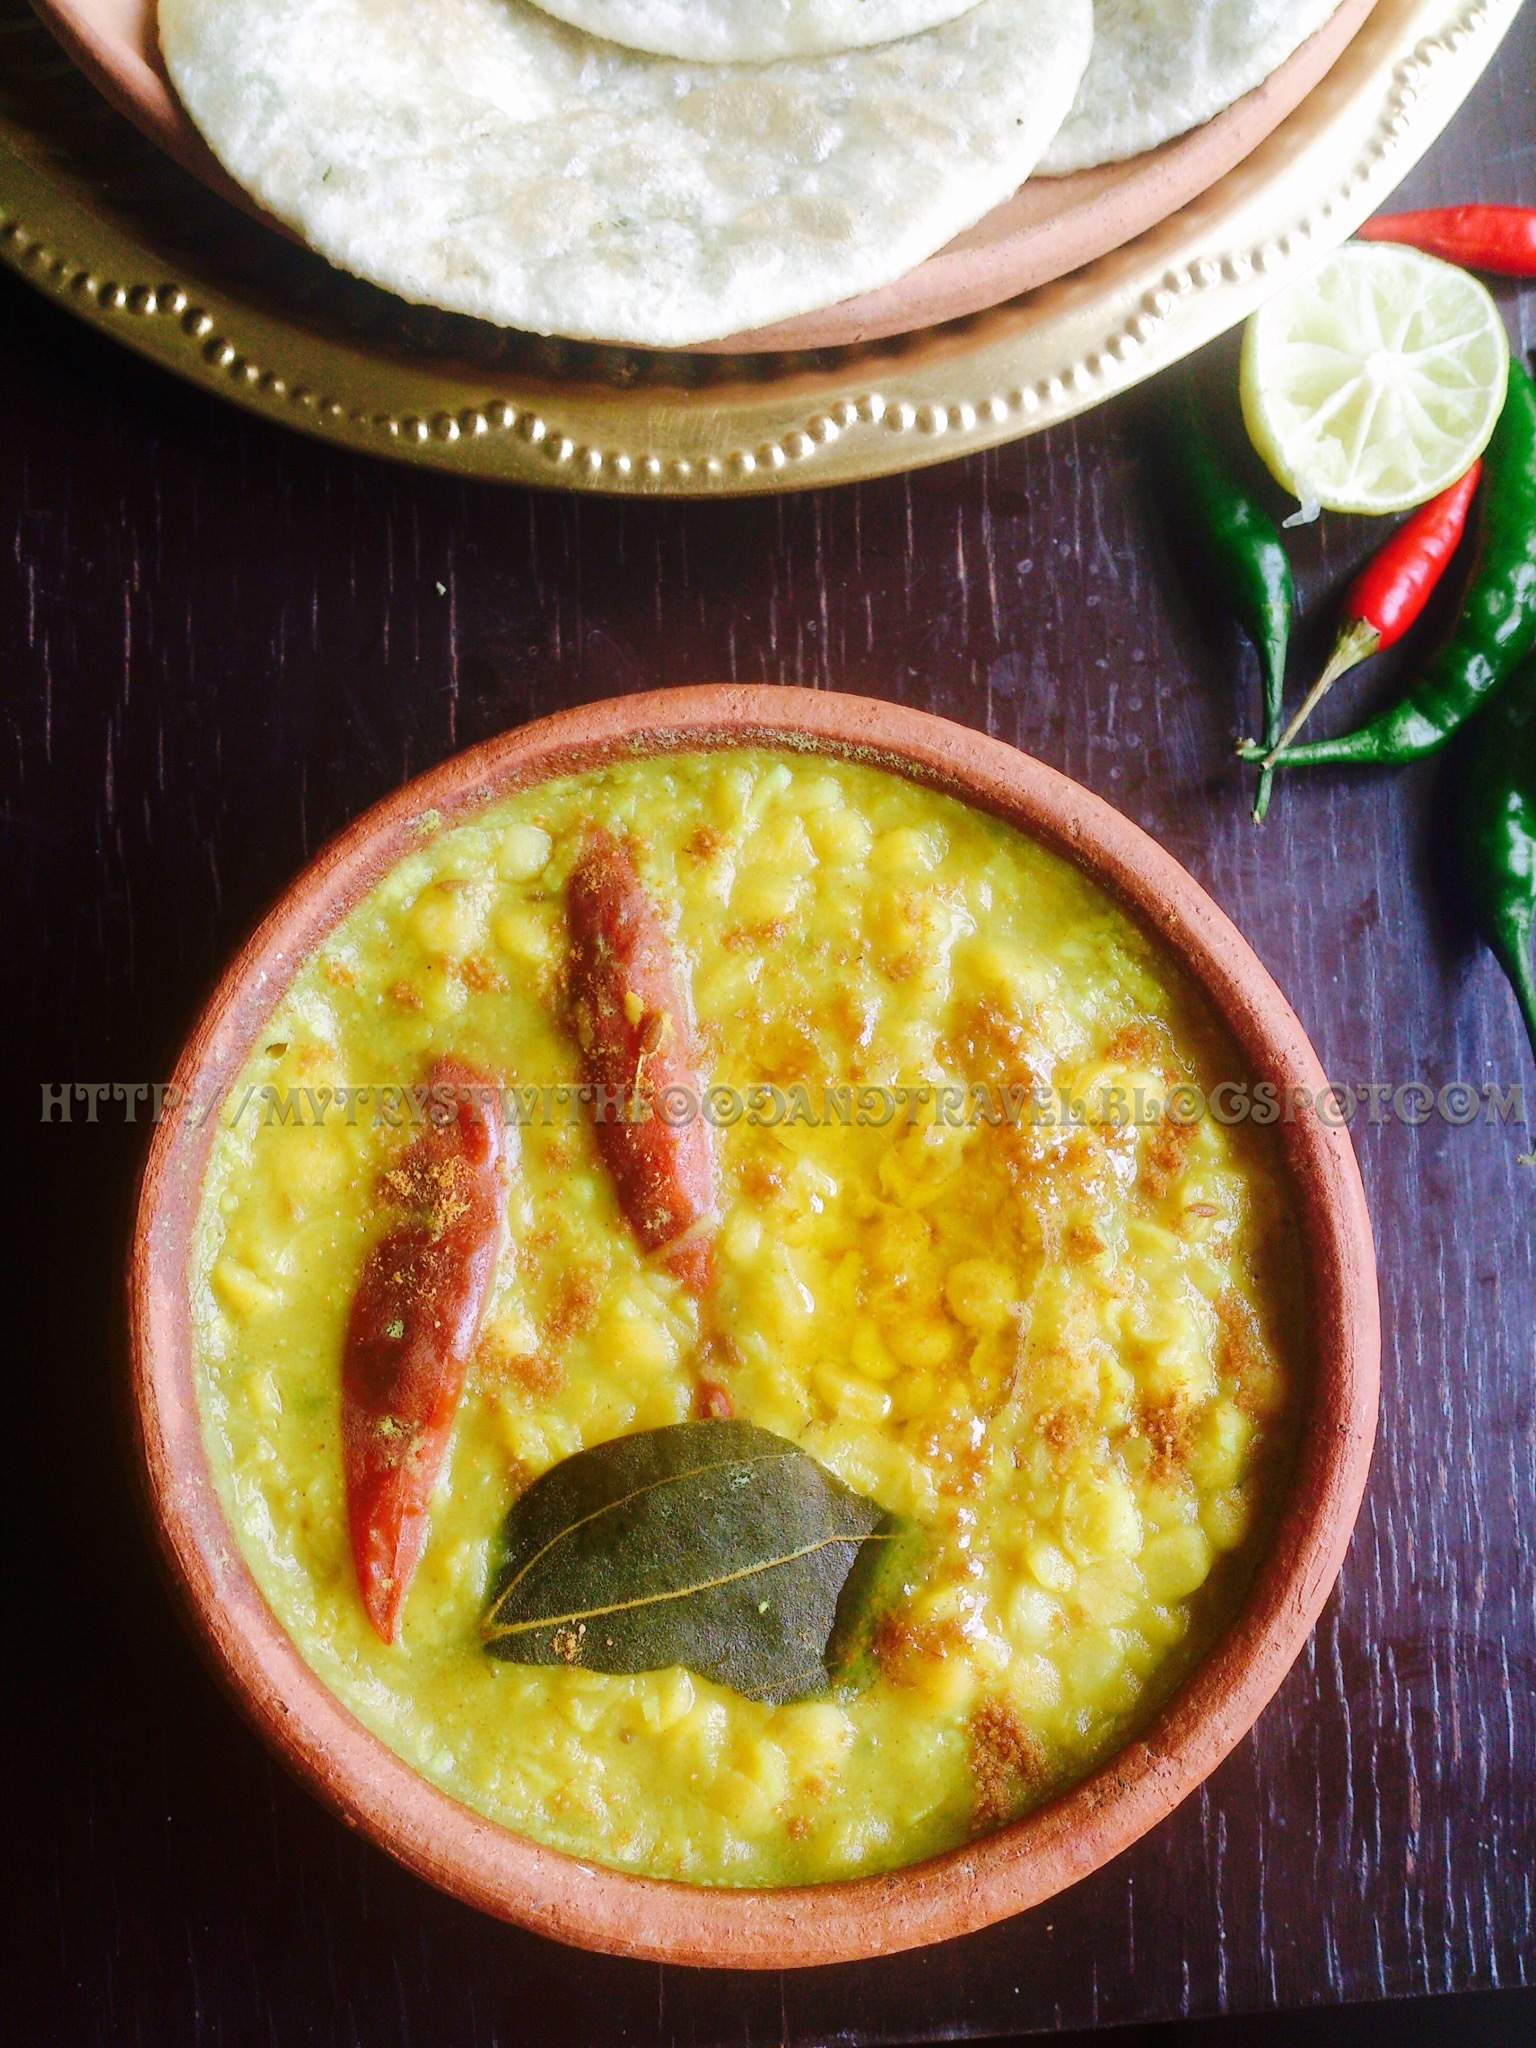 Cholar Dal Recipe / Bengali Style Chana Dal Recipe / Split Bengal Gram Lentil Curry (Bengali Style) Recipe ~ Just Recipes